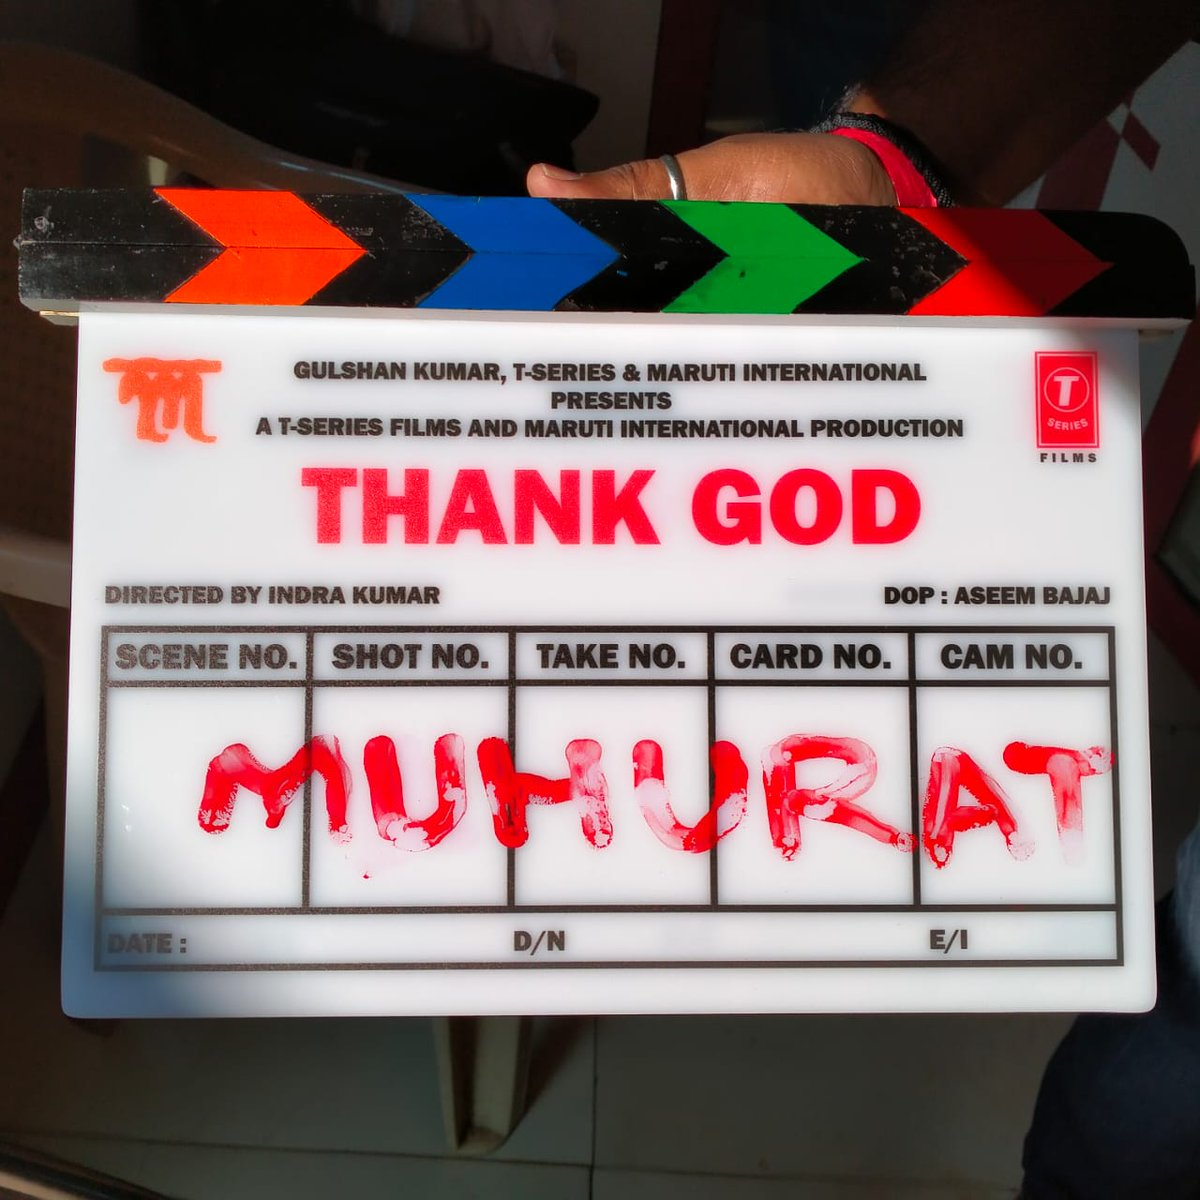 Lights. Camera. Action. 🎬🎥 The shoot for #ThankGod begins today in Mumbai !  @ajaydevgn @SidMalhotra @Rakulpreet @Indra_kumar_9 #BhushanKumar #KrishanKumar #AshokThakeria @SunirKheterpal @DeepakMukut @anandpandit63 #MarkandAdhikari #YashShah @TSeries #MarutiInternational